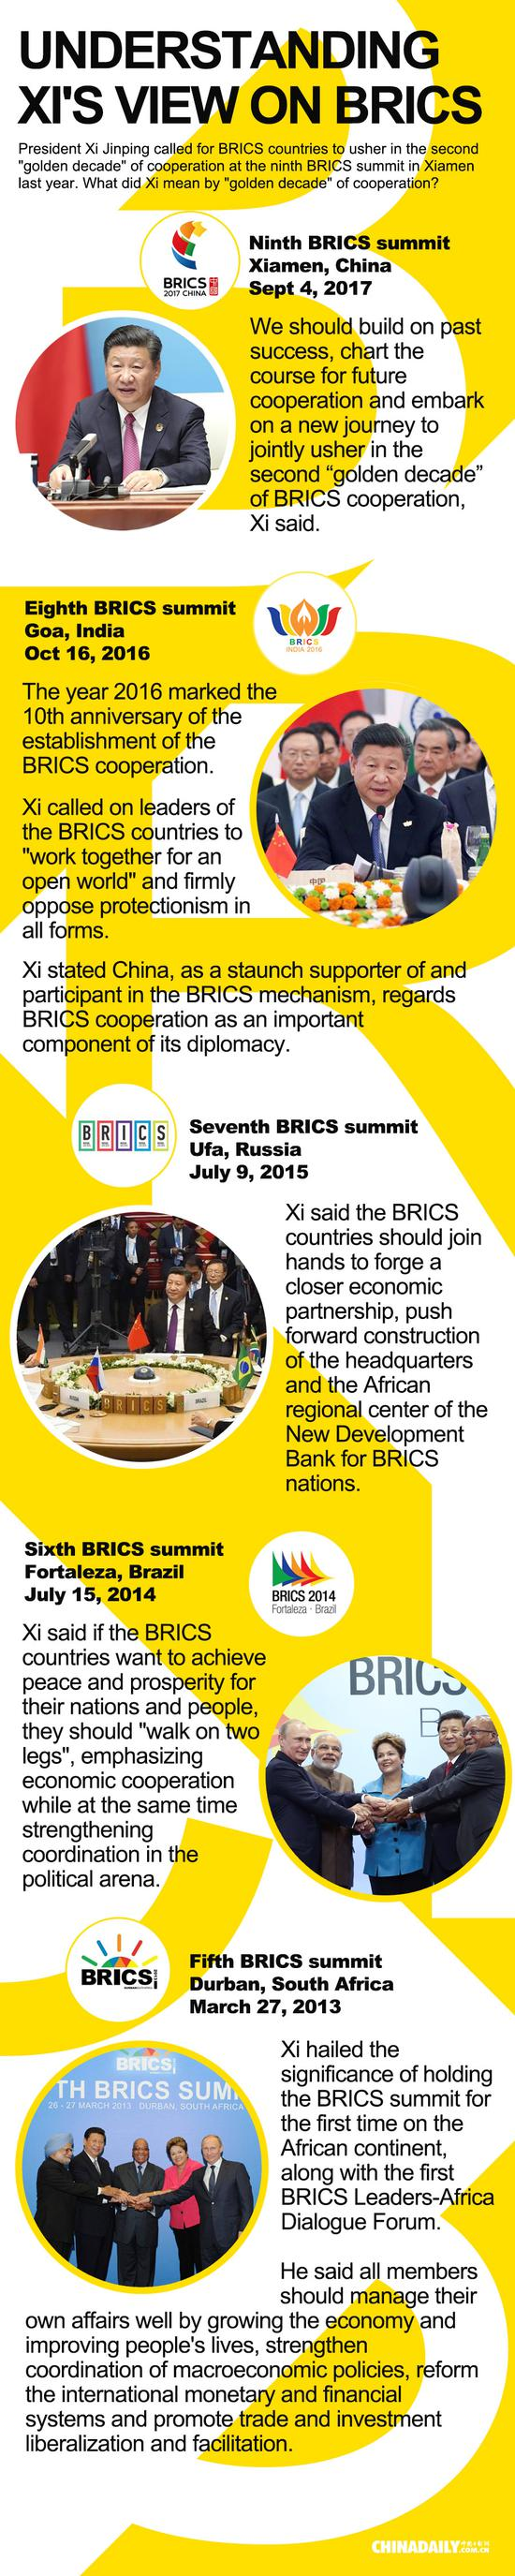 Understanding Xi's view on BRICS